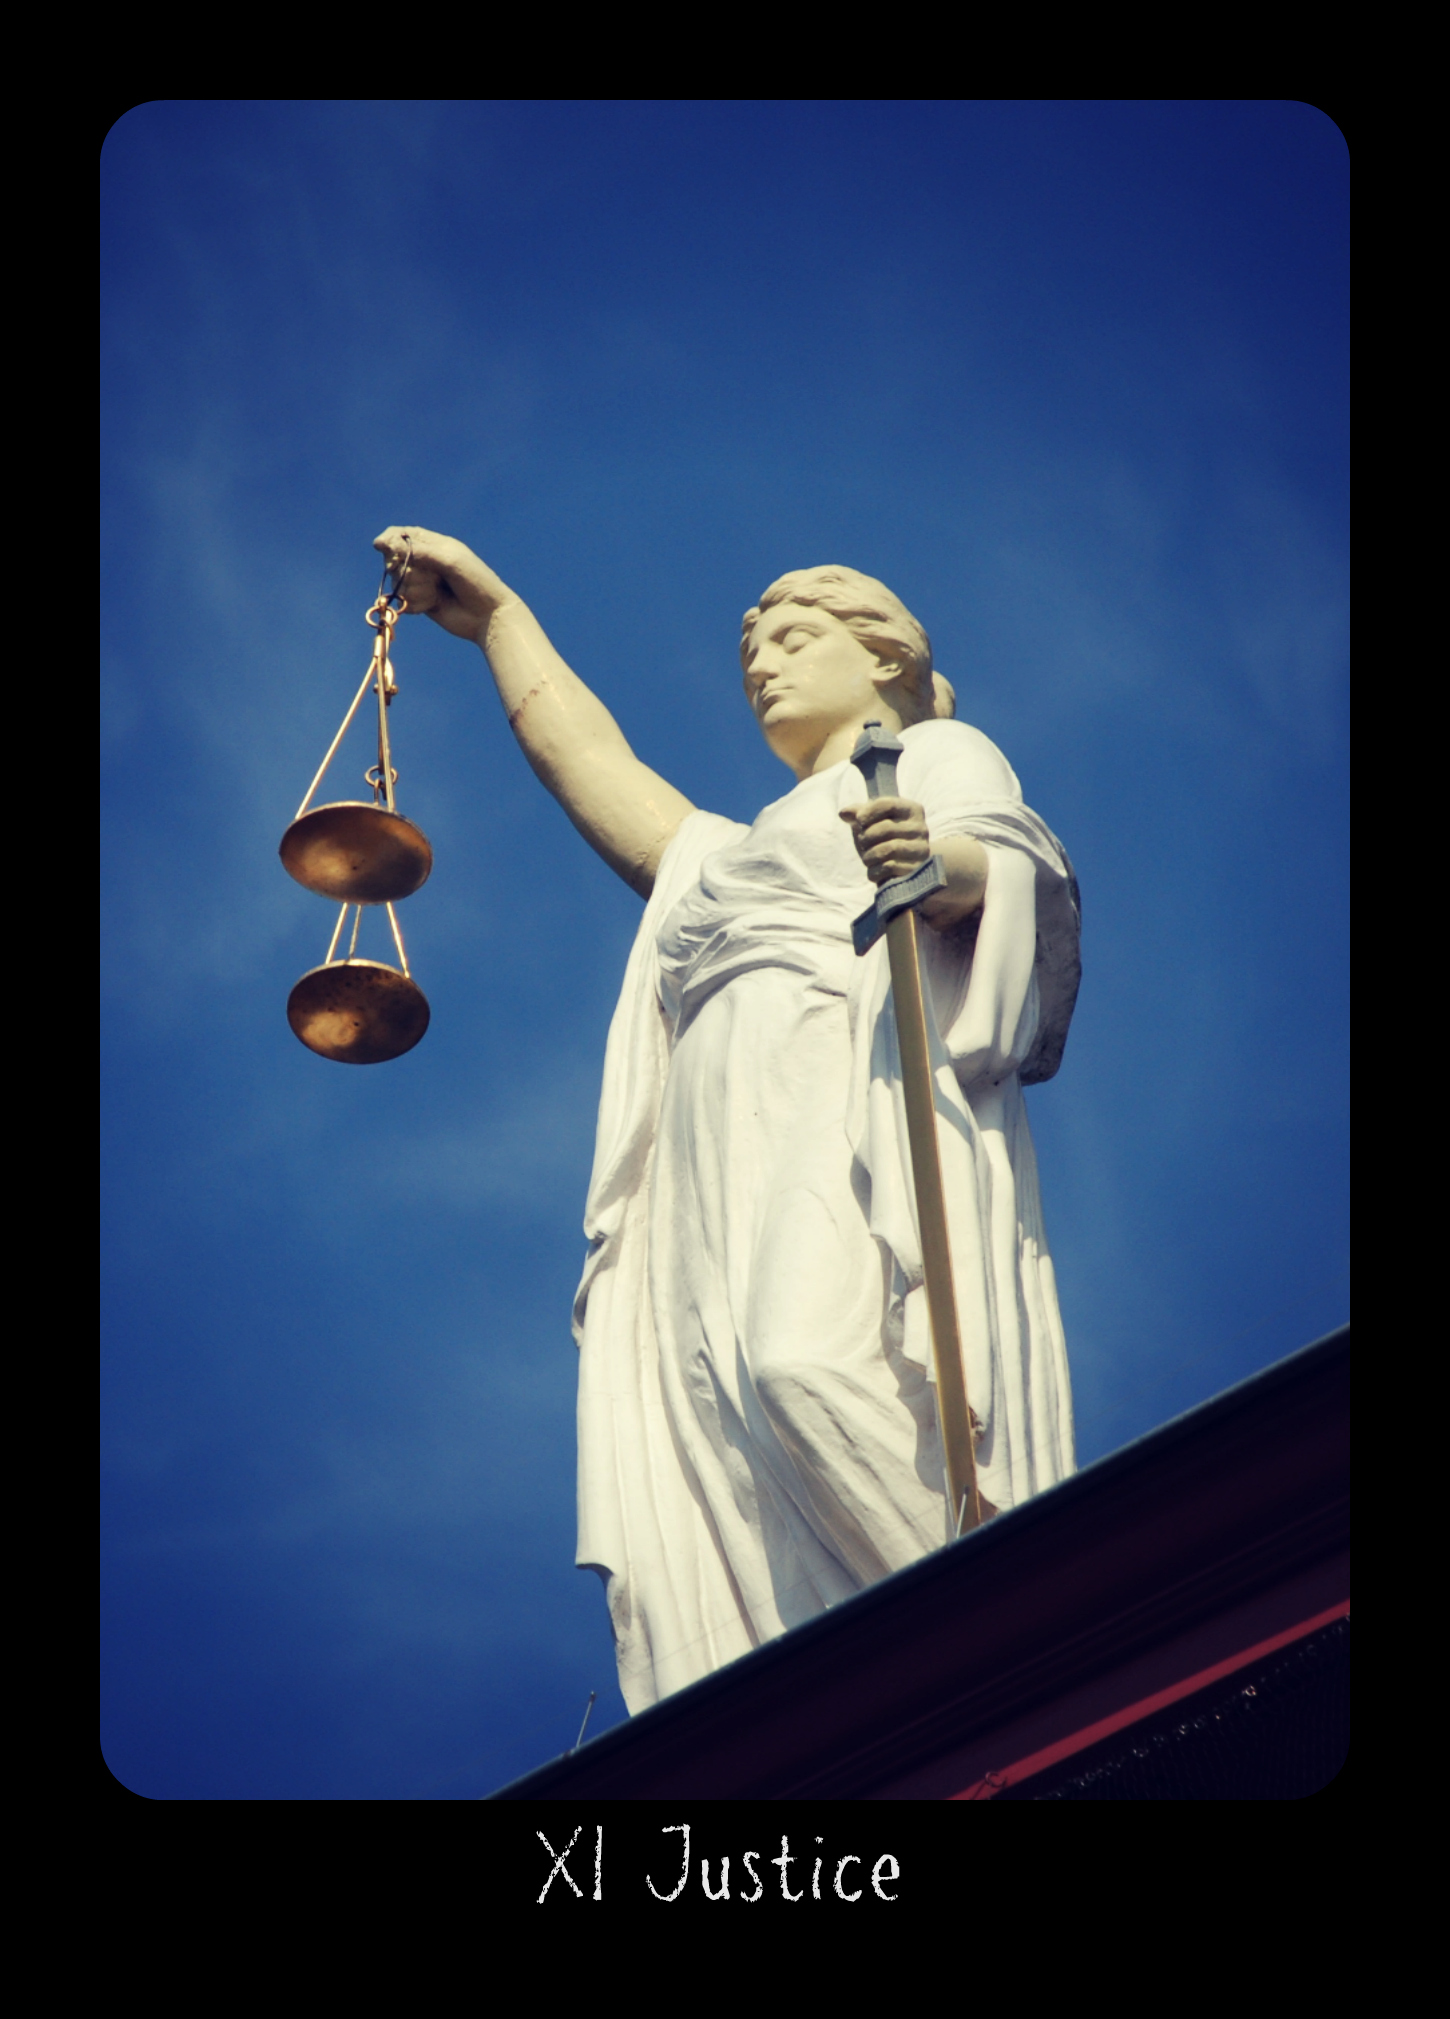 Holistic Tarot card meanings and correspondences for Justice